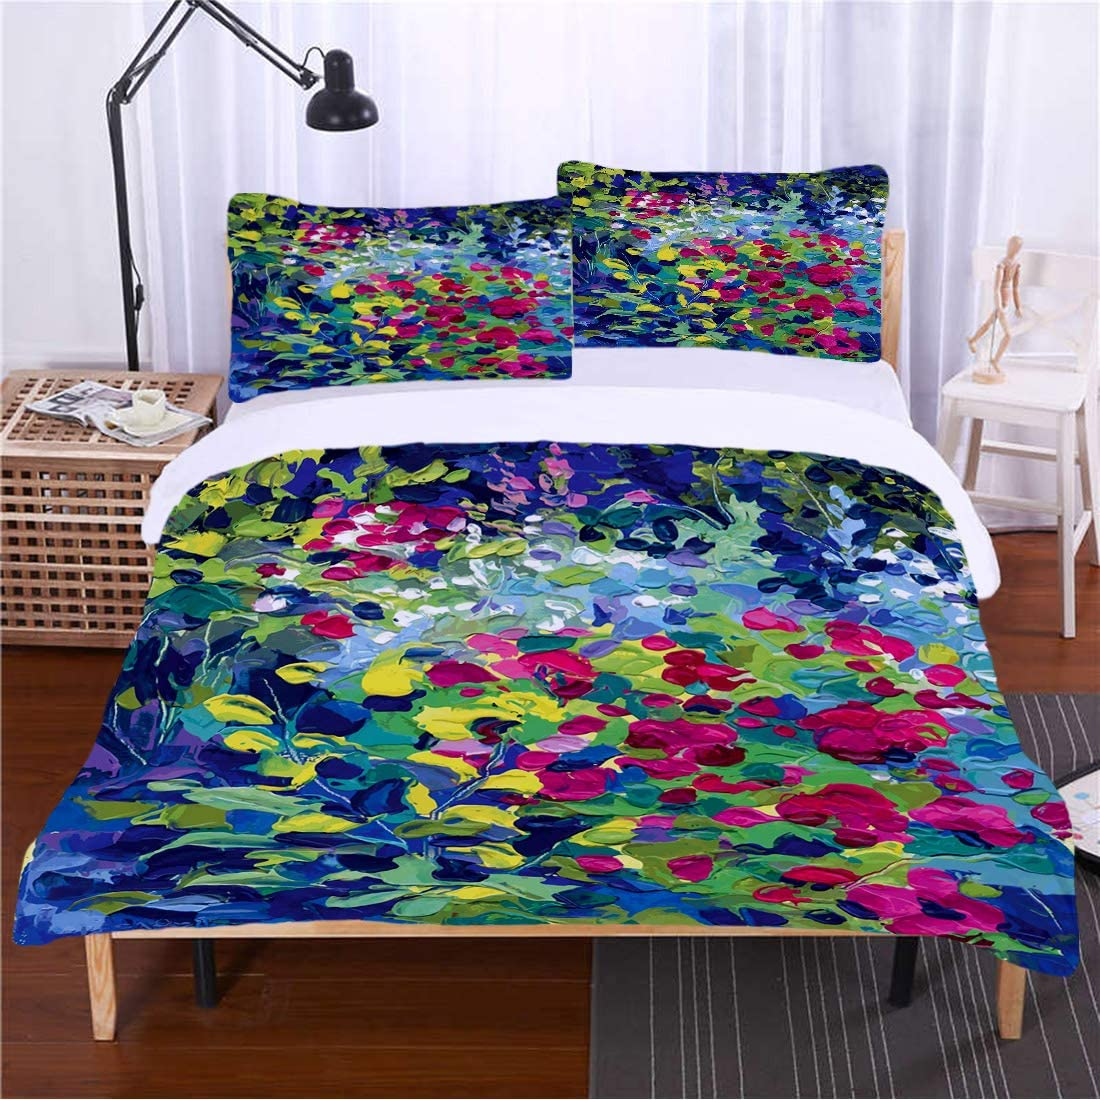 Bedding 3 Piece Duvet Cover Set Art Floral Field Vivid Toned Pastel Flourishing Fragrance Botany Summer Petals Picture Decorative 2 Pillowcases Luxury Quality Soft Lightweight Breathable,QUEEN